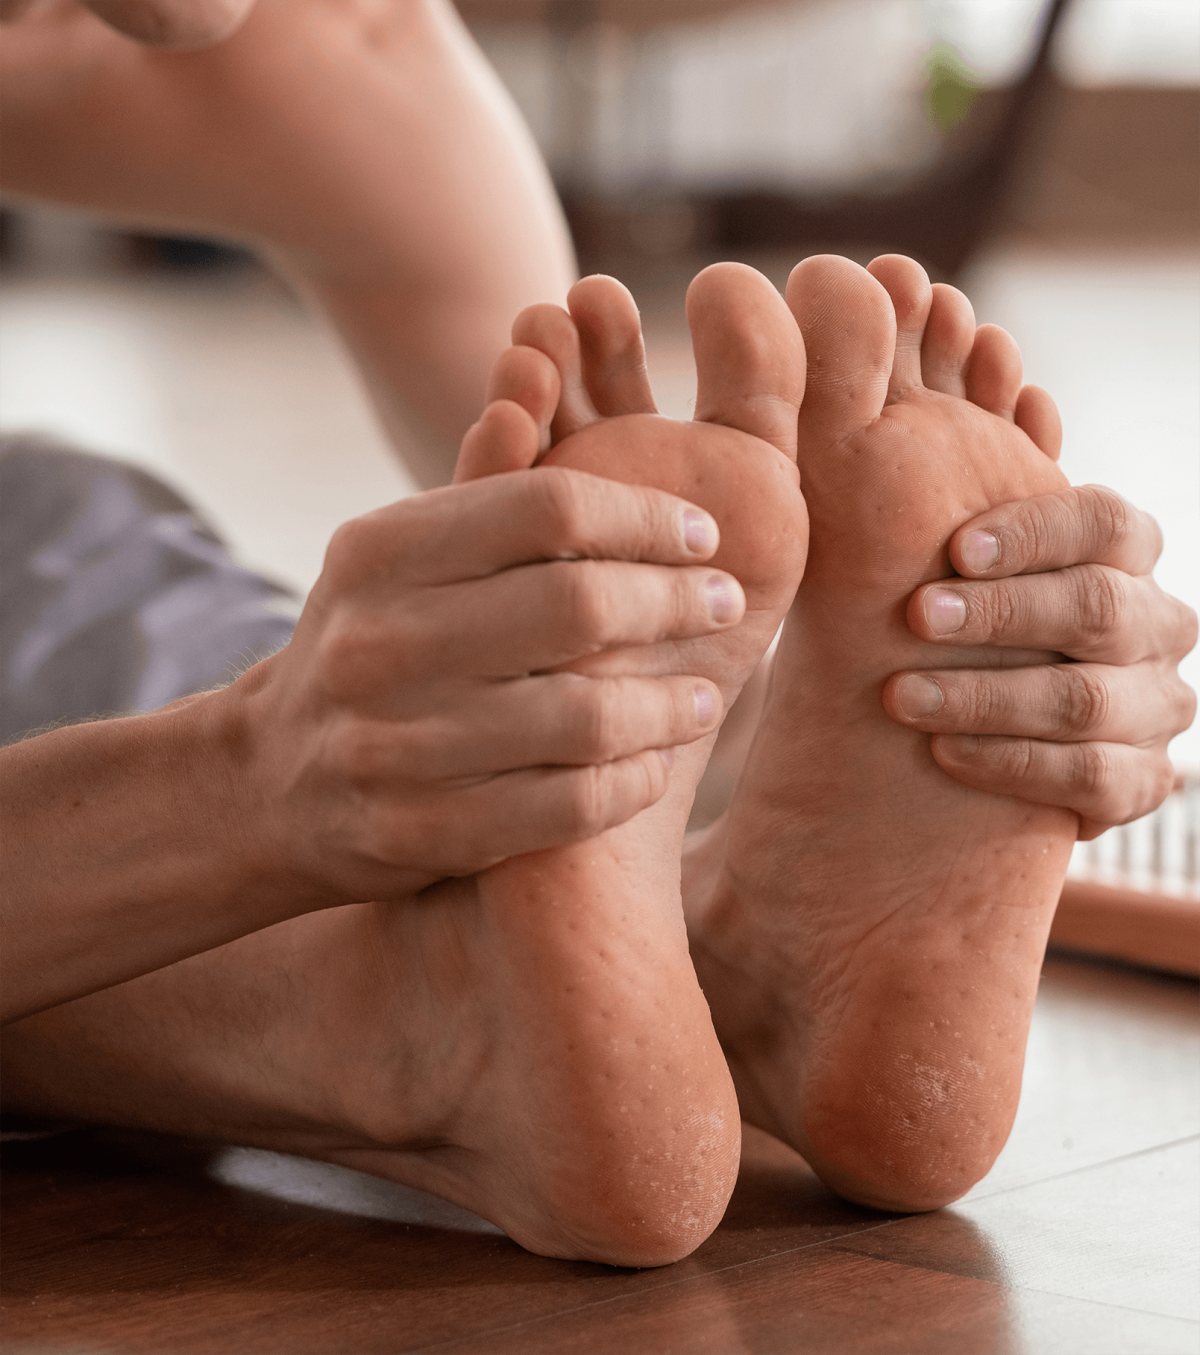 barefoot-man-sitting-on-wooden-floor-and-holding-h-BMLN7DQ-1200x1355.png